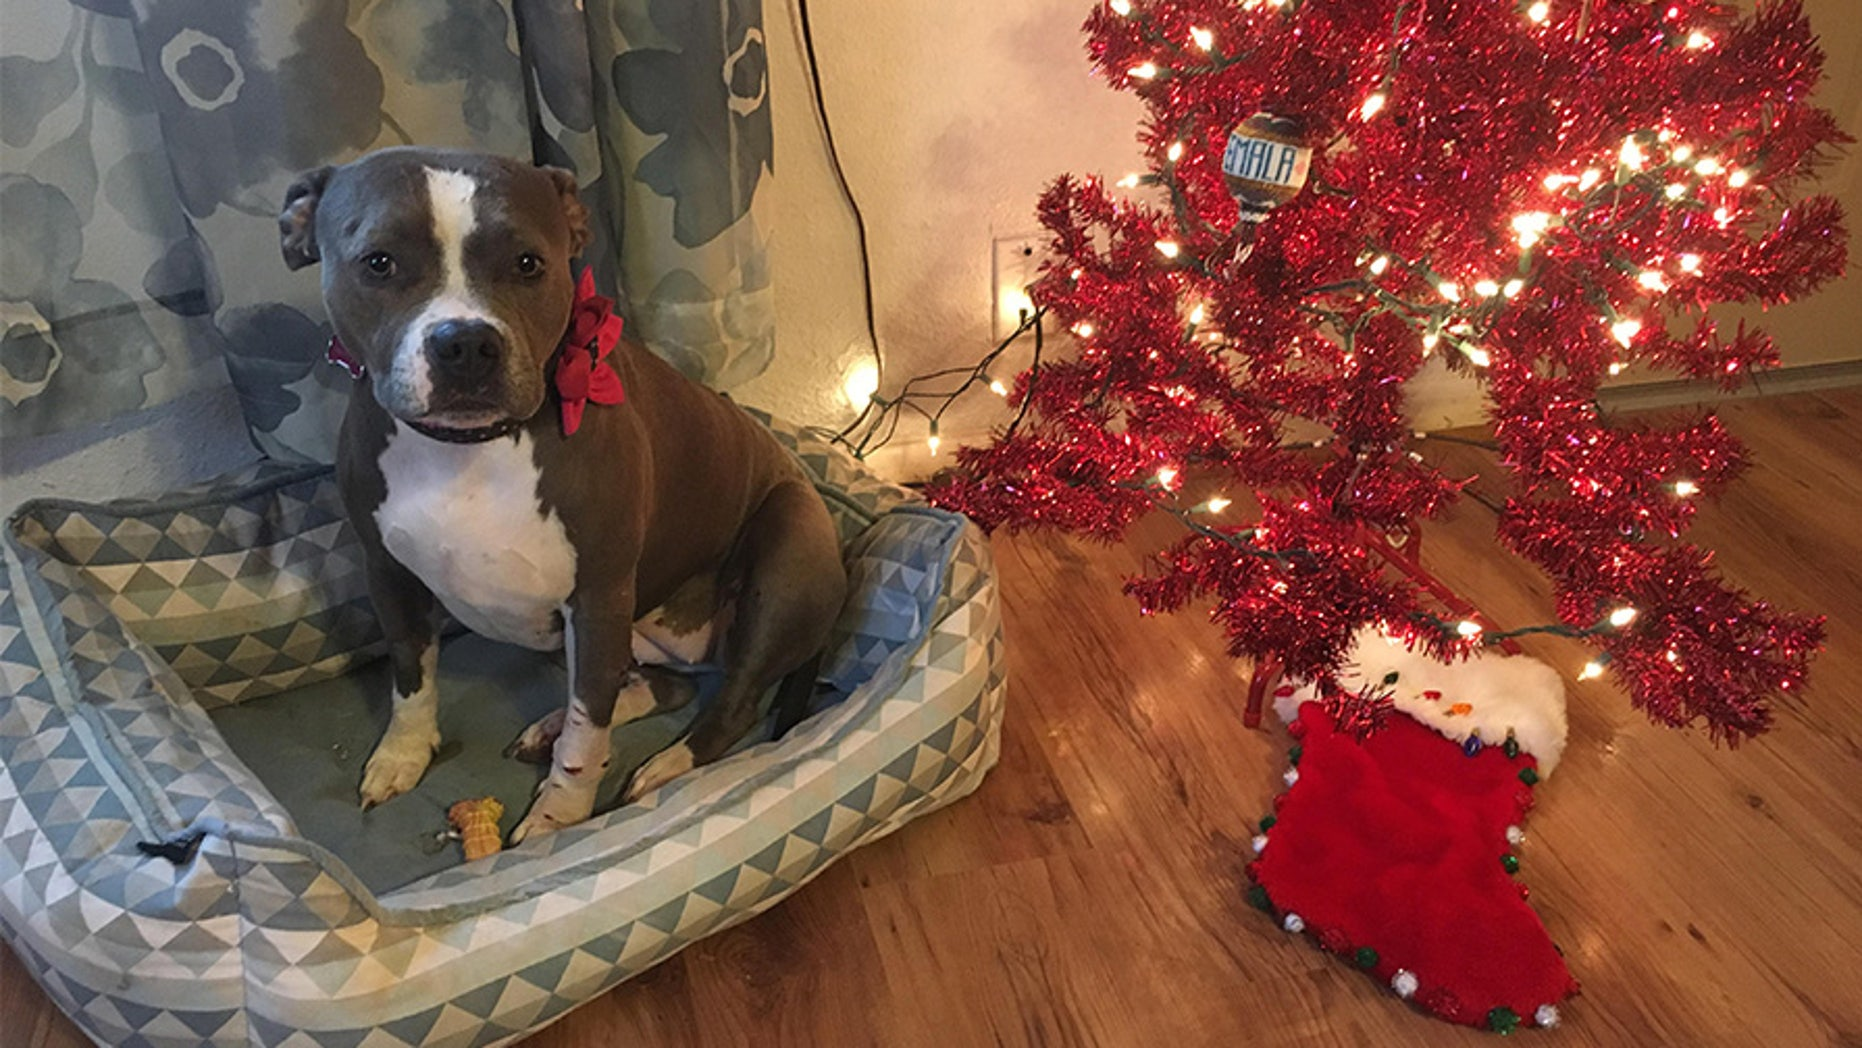 An Army vet's beloved 3-year-old pit bull, Bridget, was stolen from his house five days before Christmas.